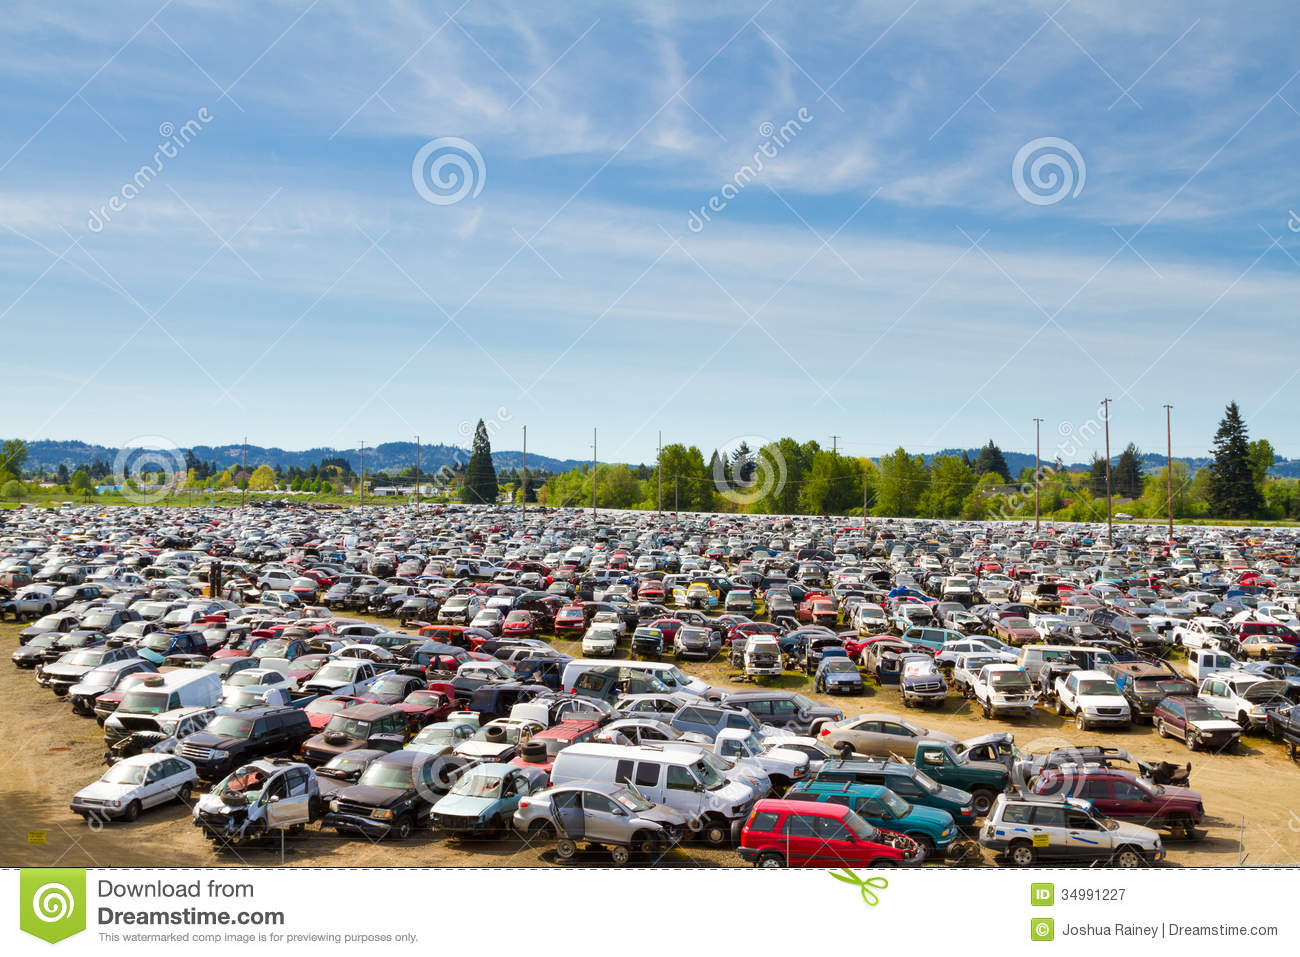 How to Start an Auto Salvage Business